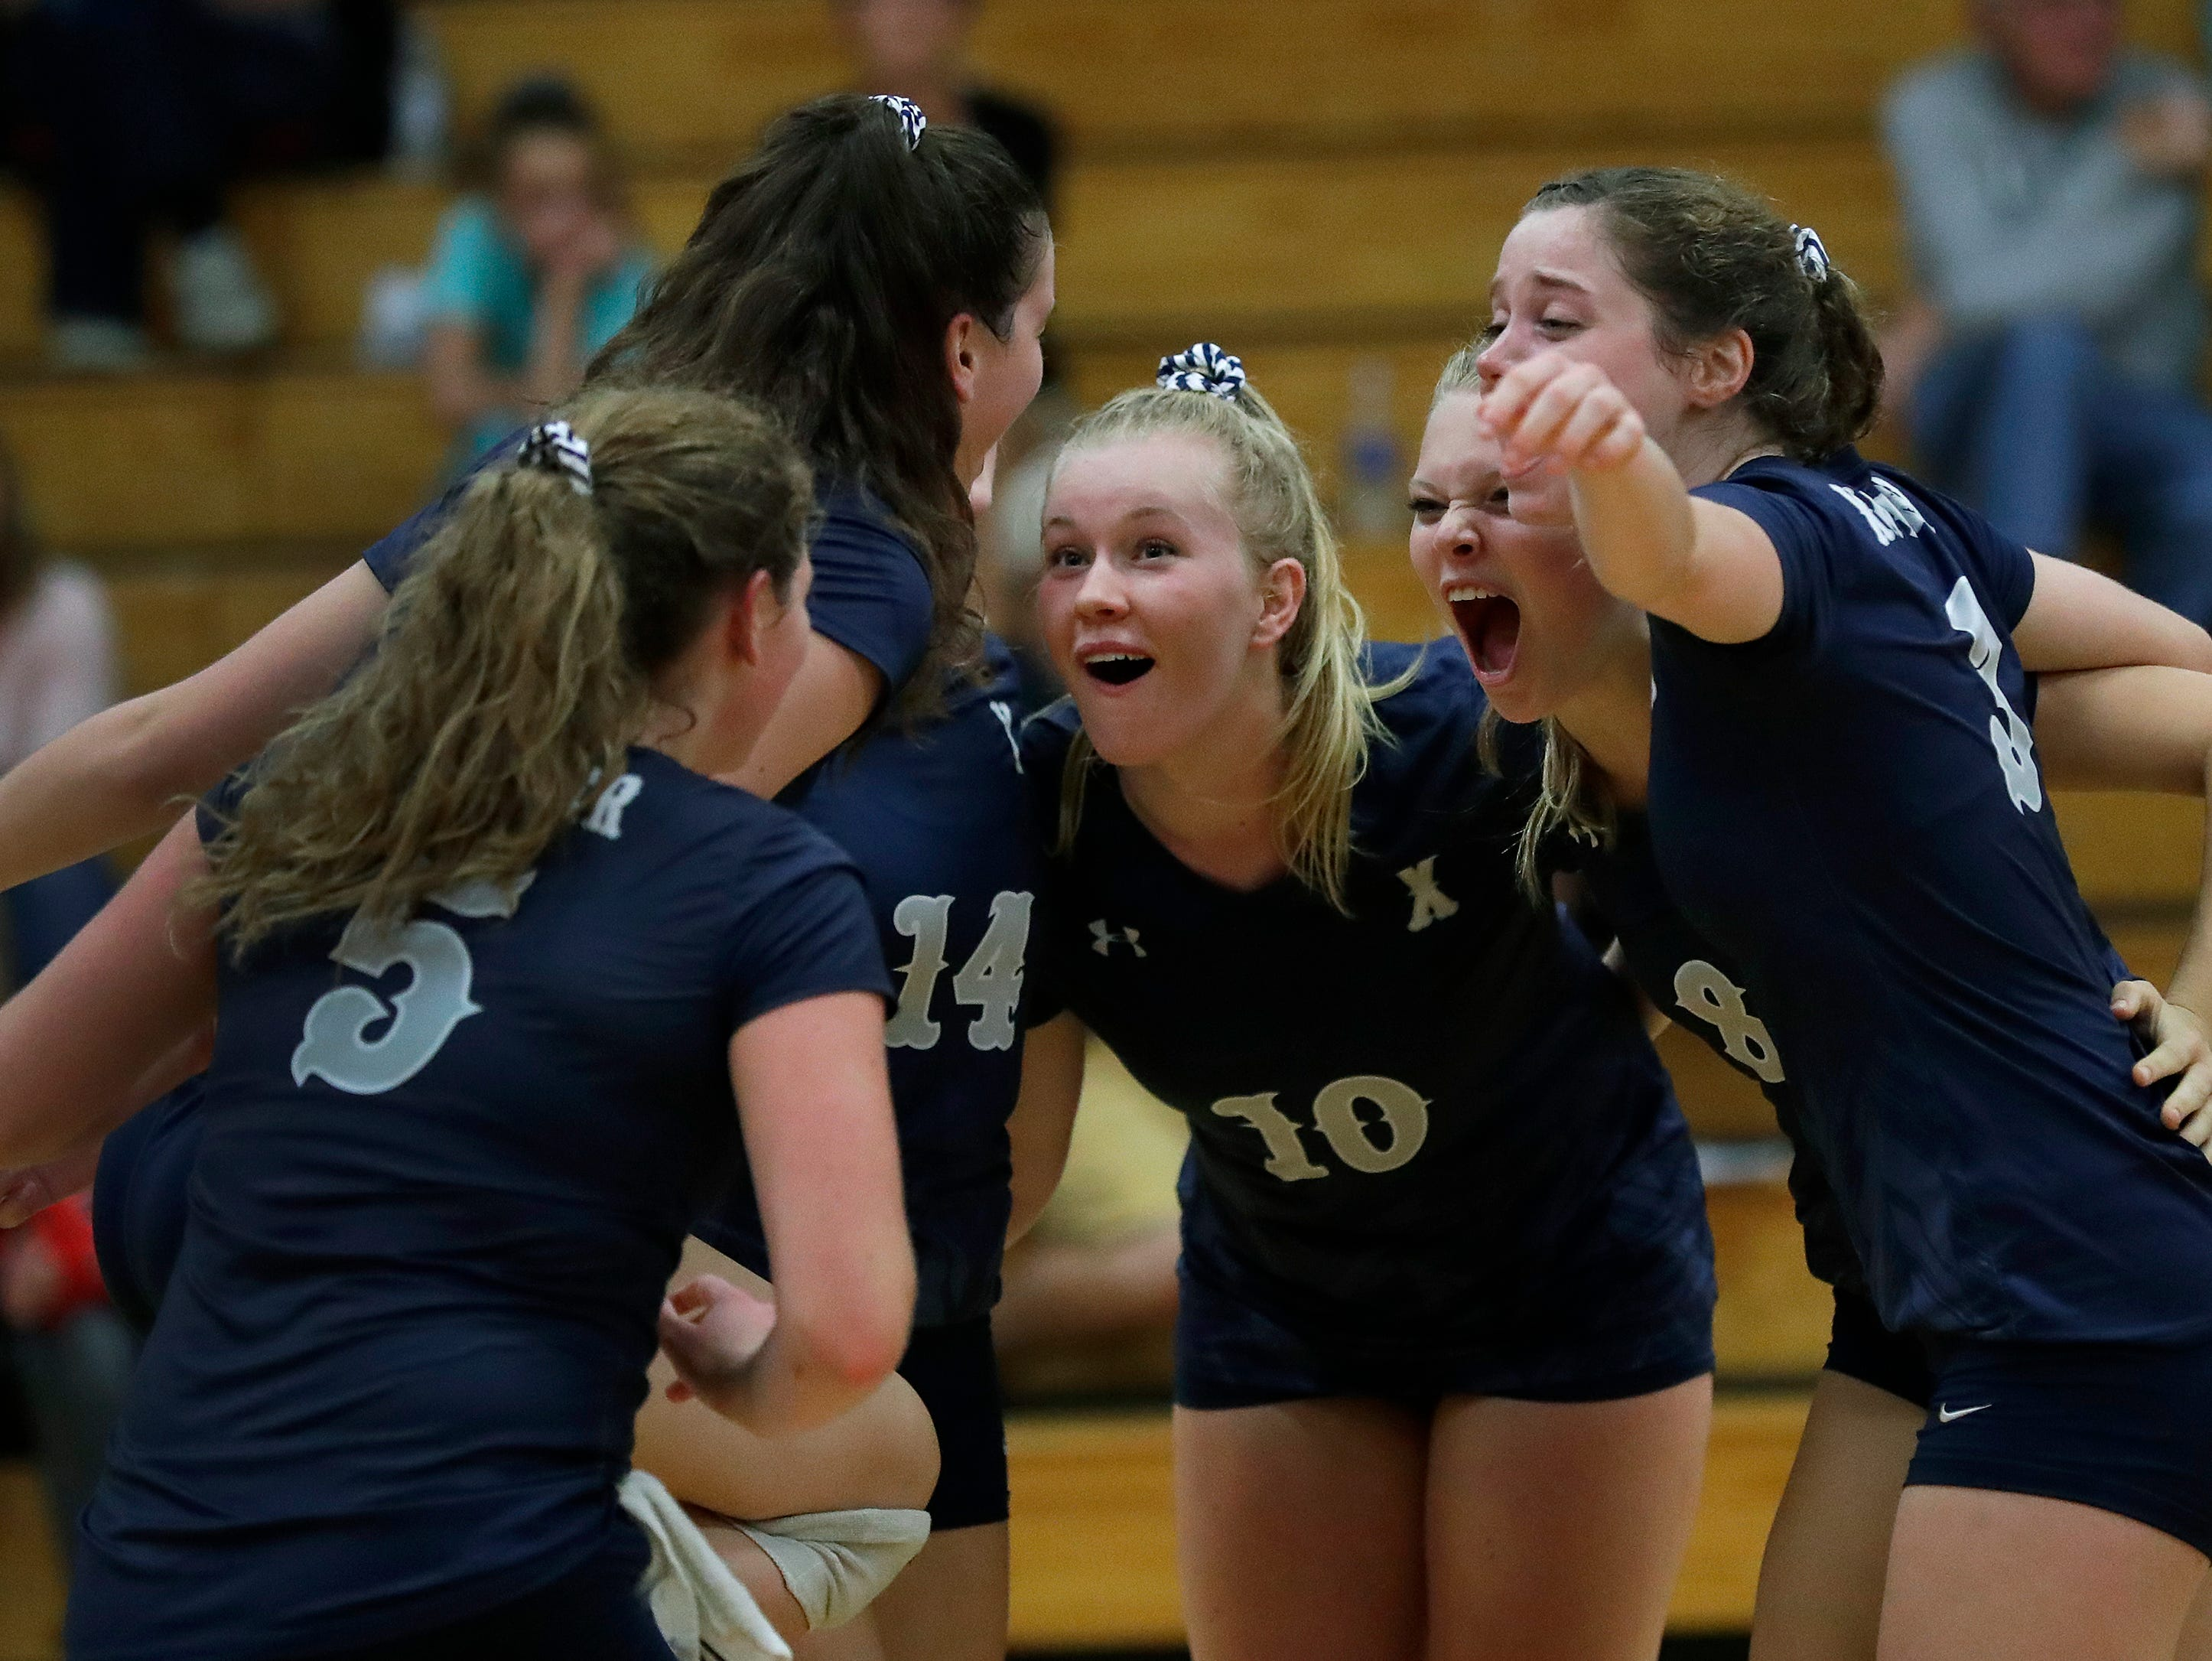 Xavier High School's players celebrate winning a point against New London High School during their girls volleyball match Thursday, Sept. 13, 2018, in Appleton, Wis. 